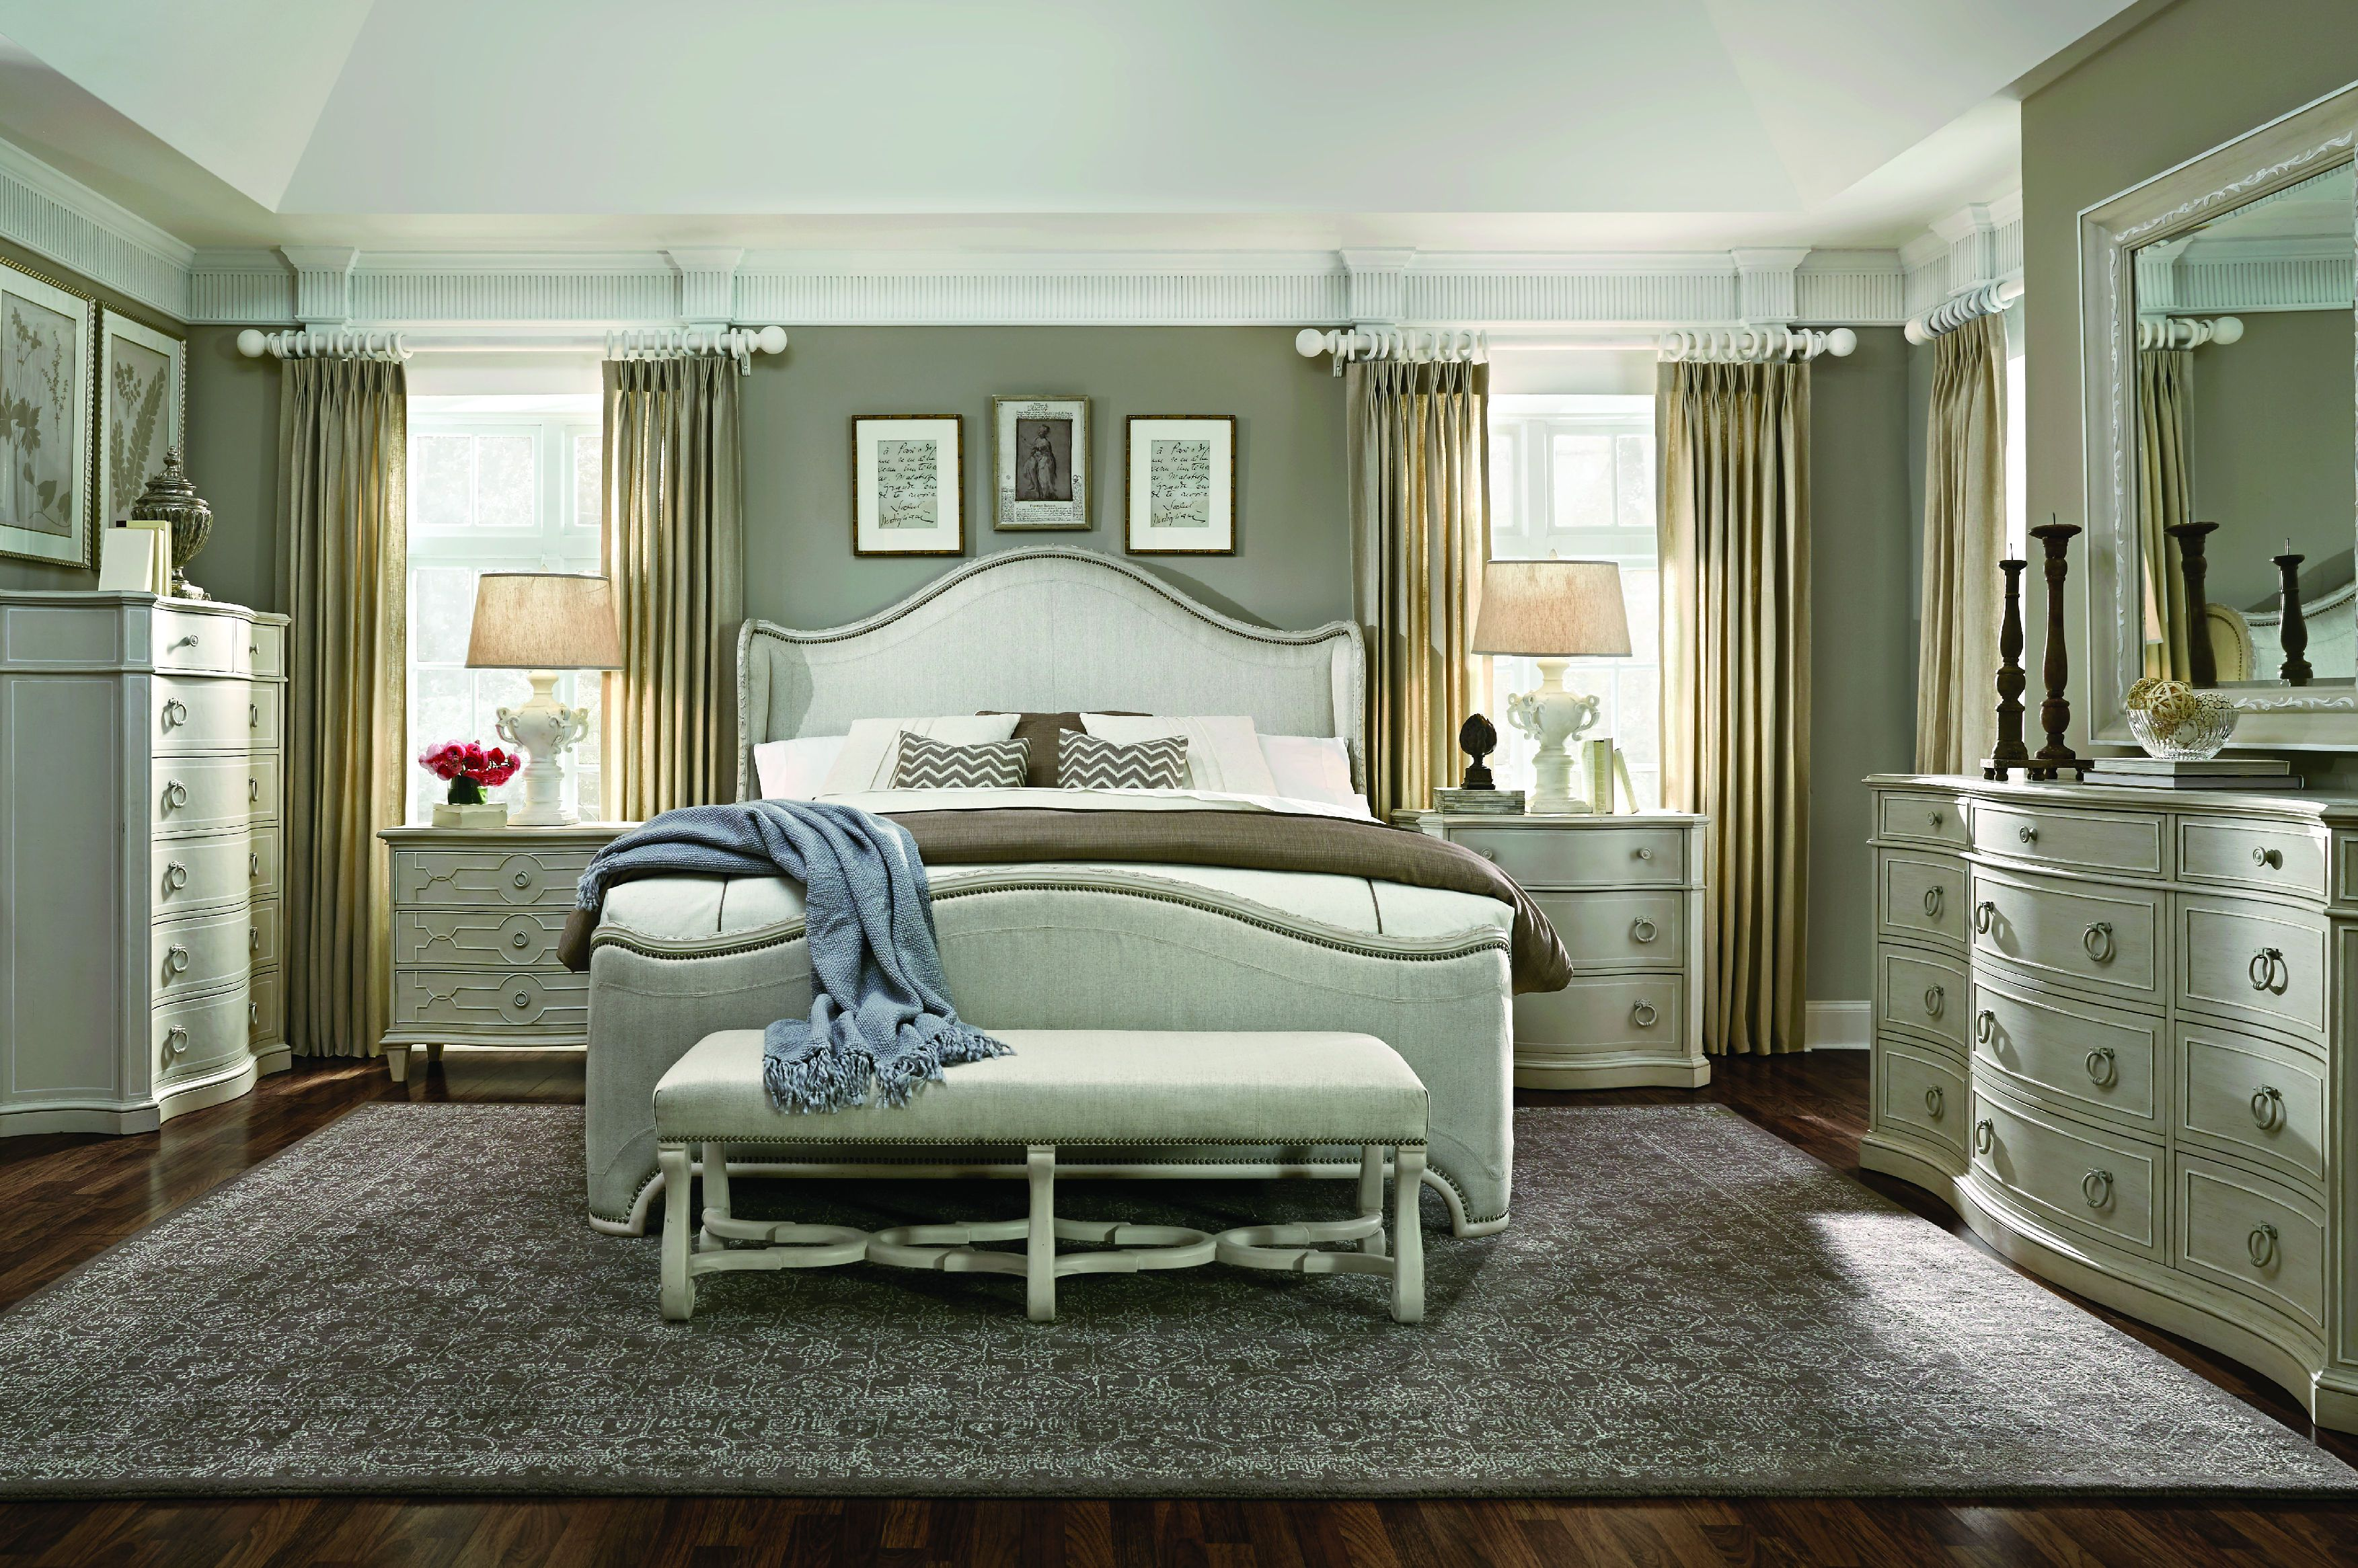 Image result for green and grey bedroom Master bedroom